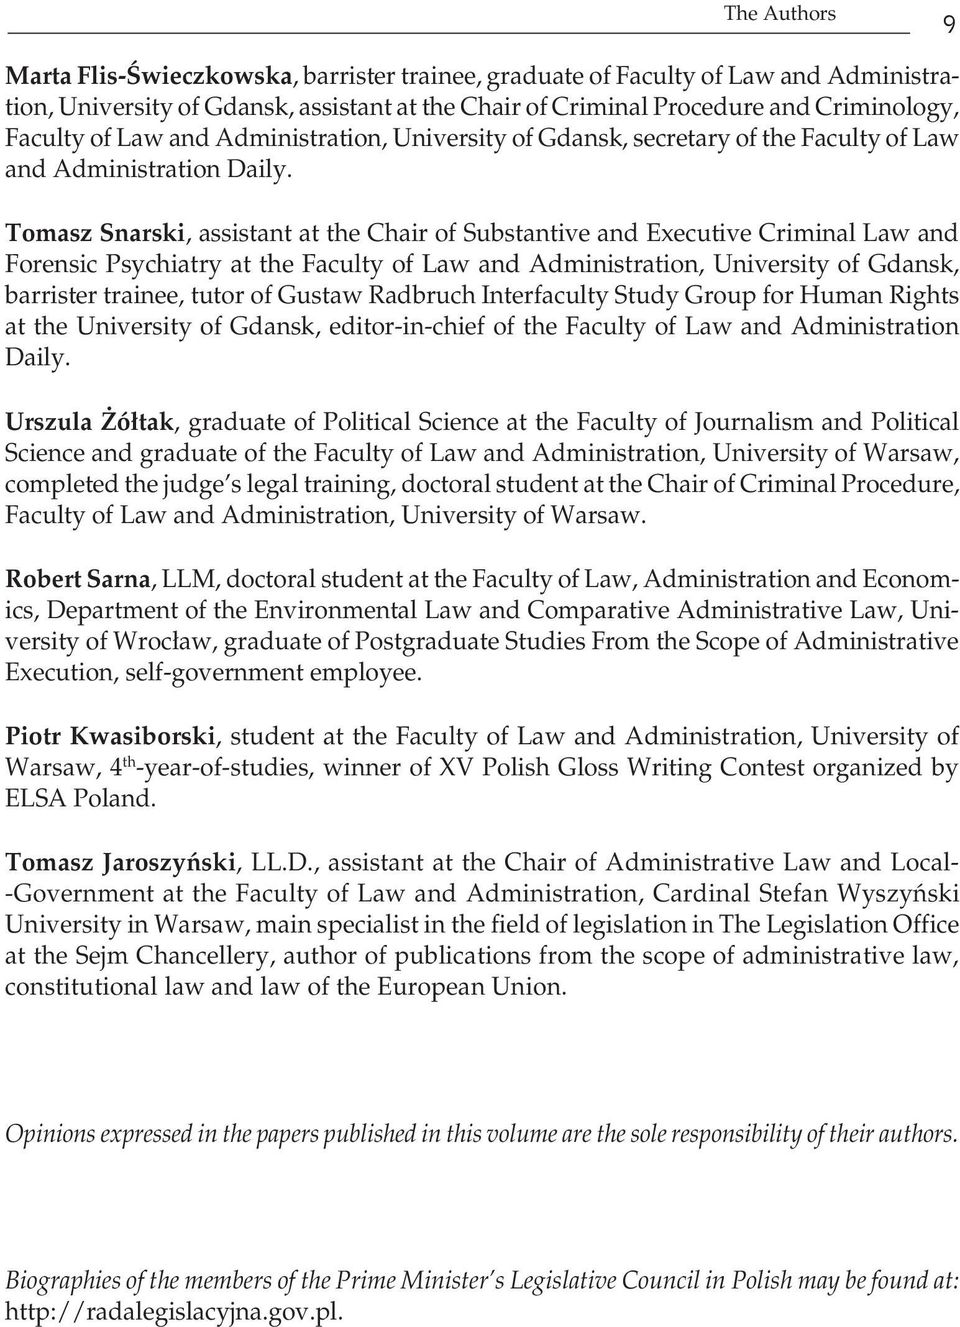 tomasz Snarski, assistant at the Chair of Substantive and Executive Criminal Law and Forensic Psychiatry at the Faculty of Law and Administration, University of Gdansk, barrister trainee, tutor of